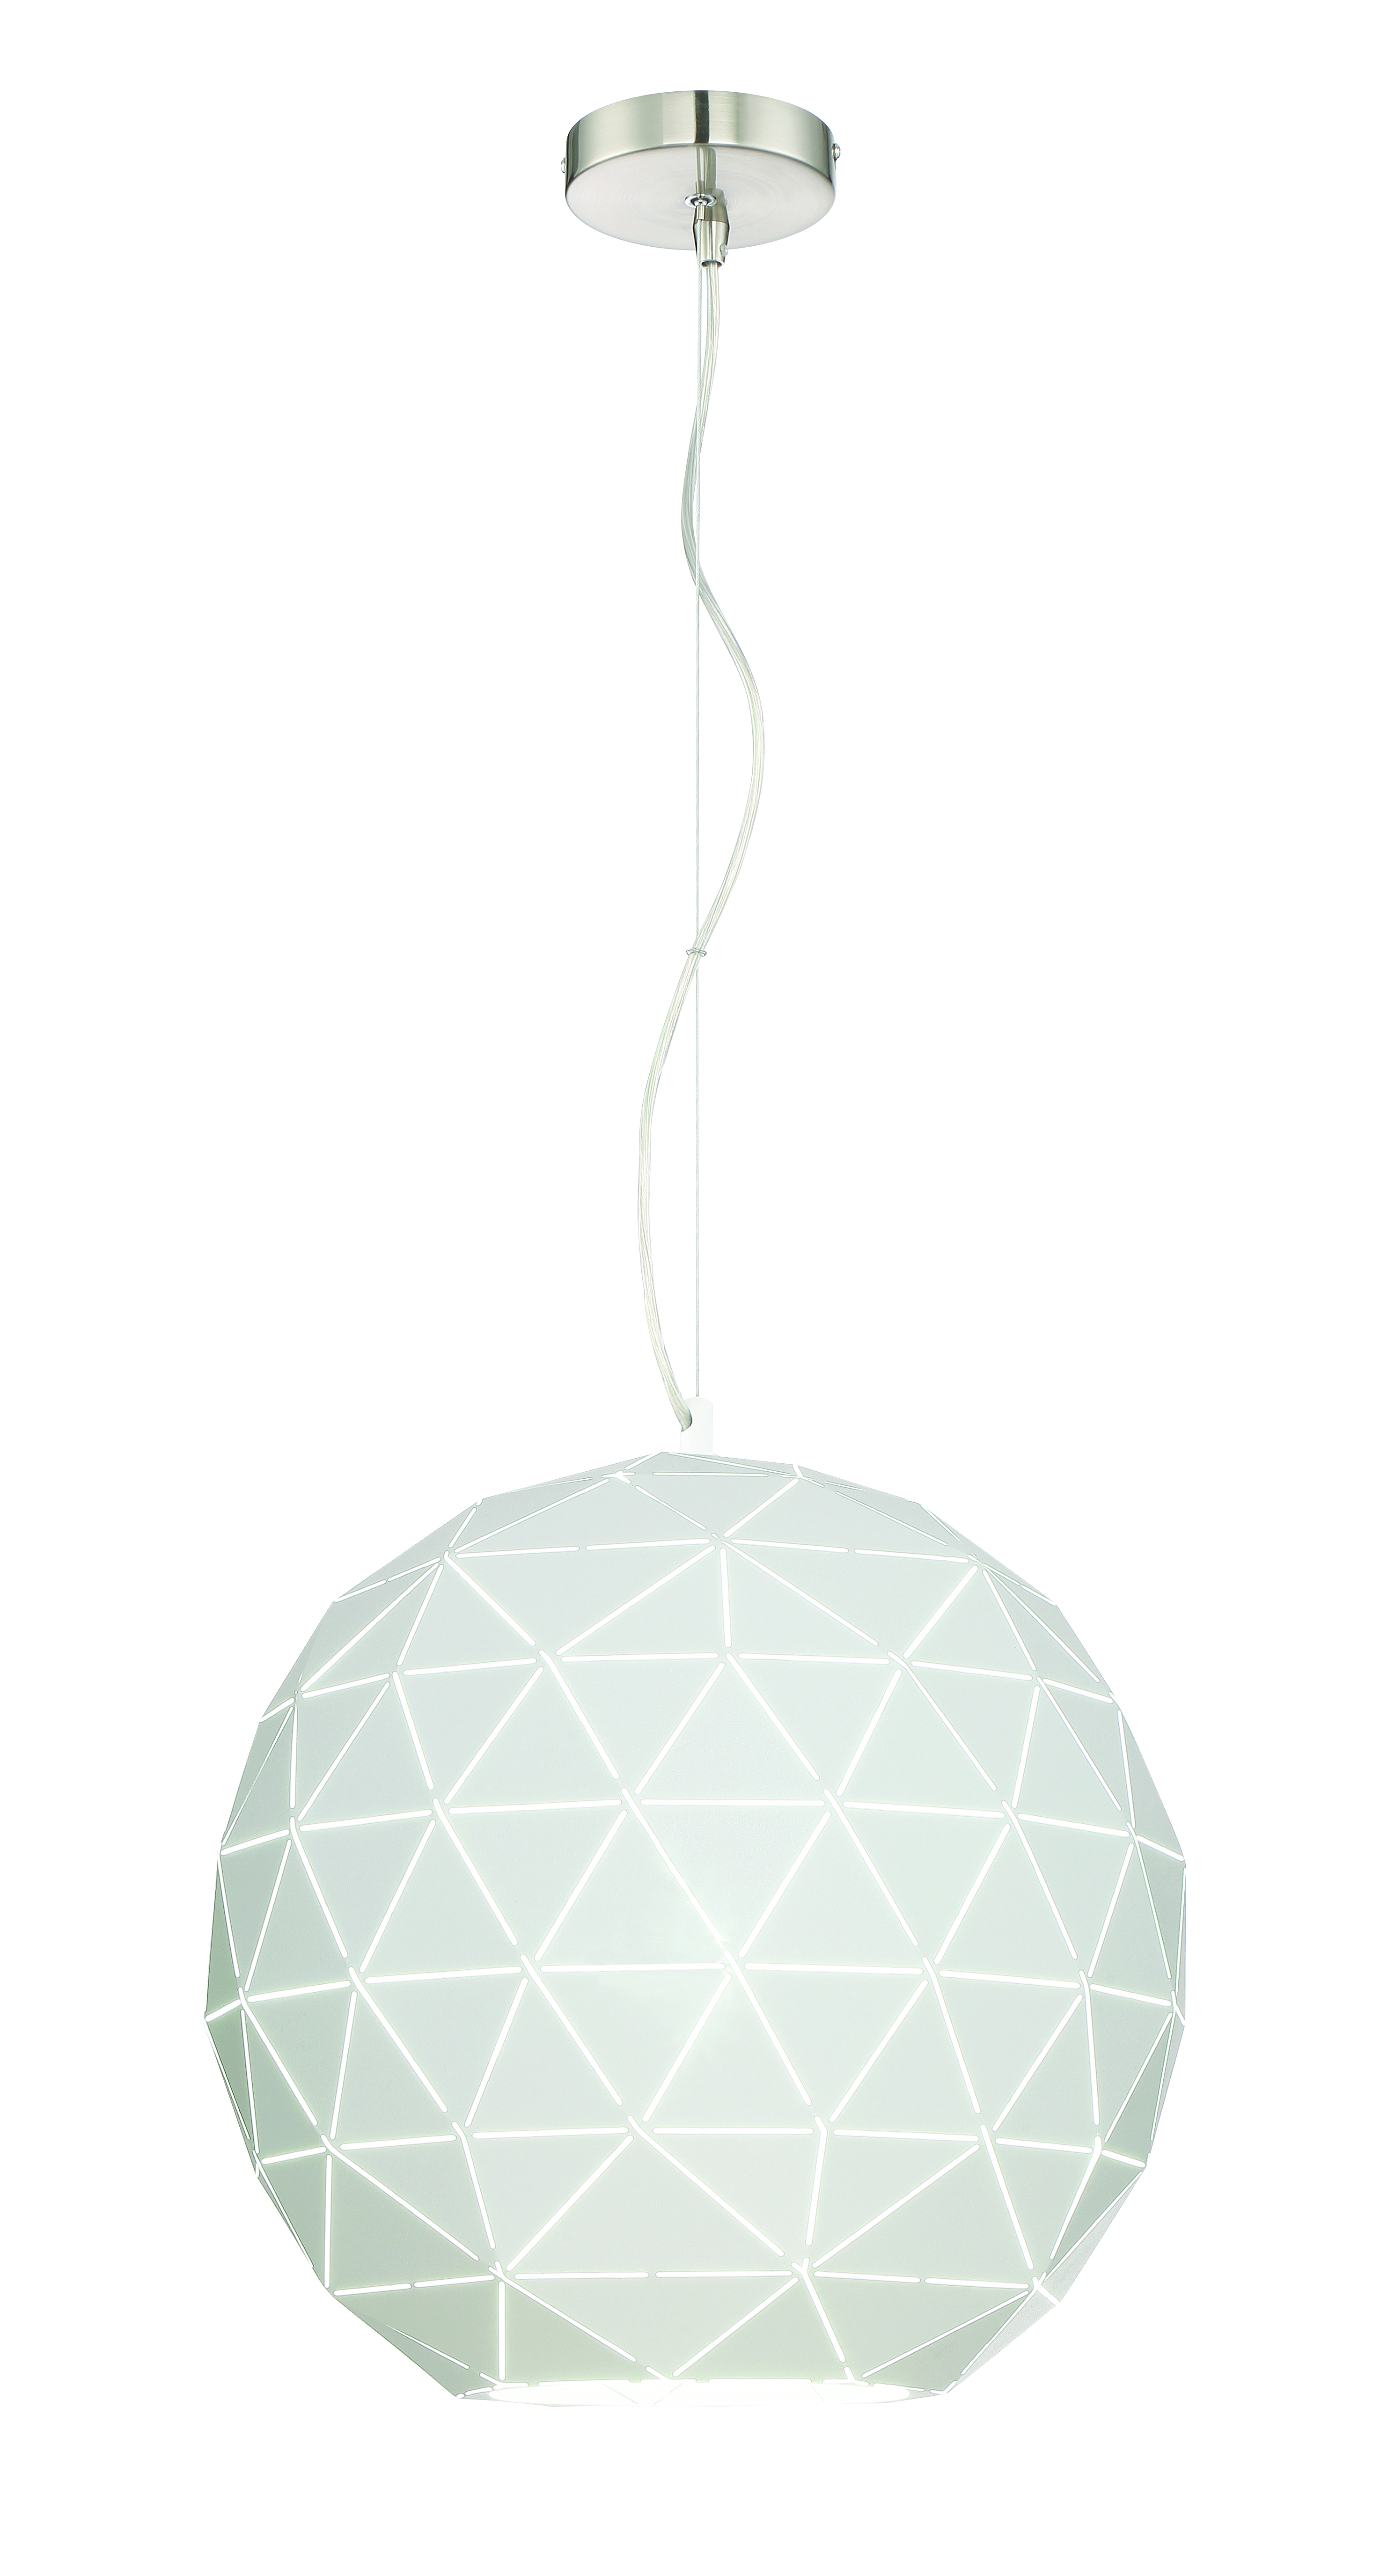 Pandora pendant with a white laser-cut shade from Lite Source